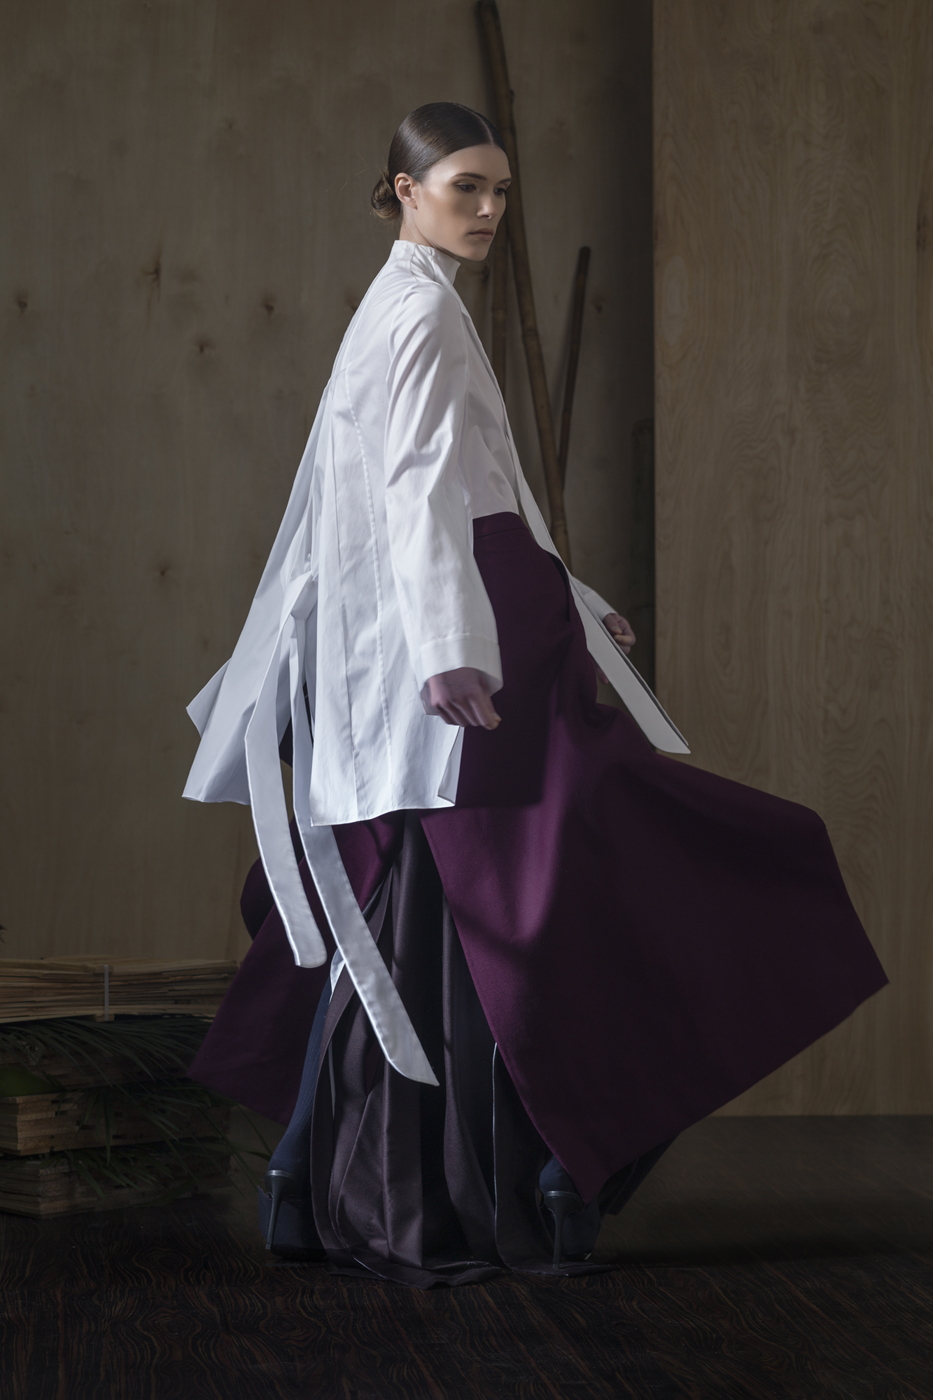 Oxford Cotton L/SLV Blouse with Tie and Seam Extrusion Details  Paired With  Plum Overlap Skirt and Deep Plum Super Overlap Trousers. Polished, Stoned Brooch.